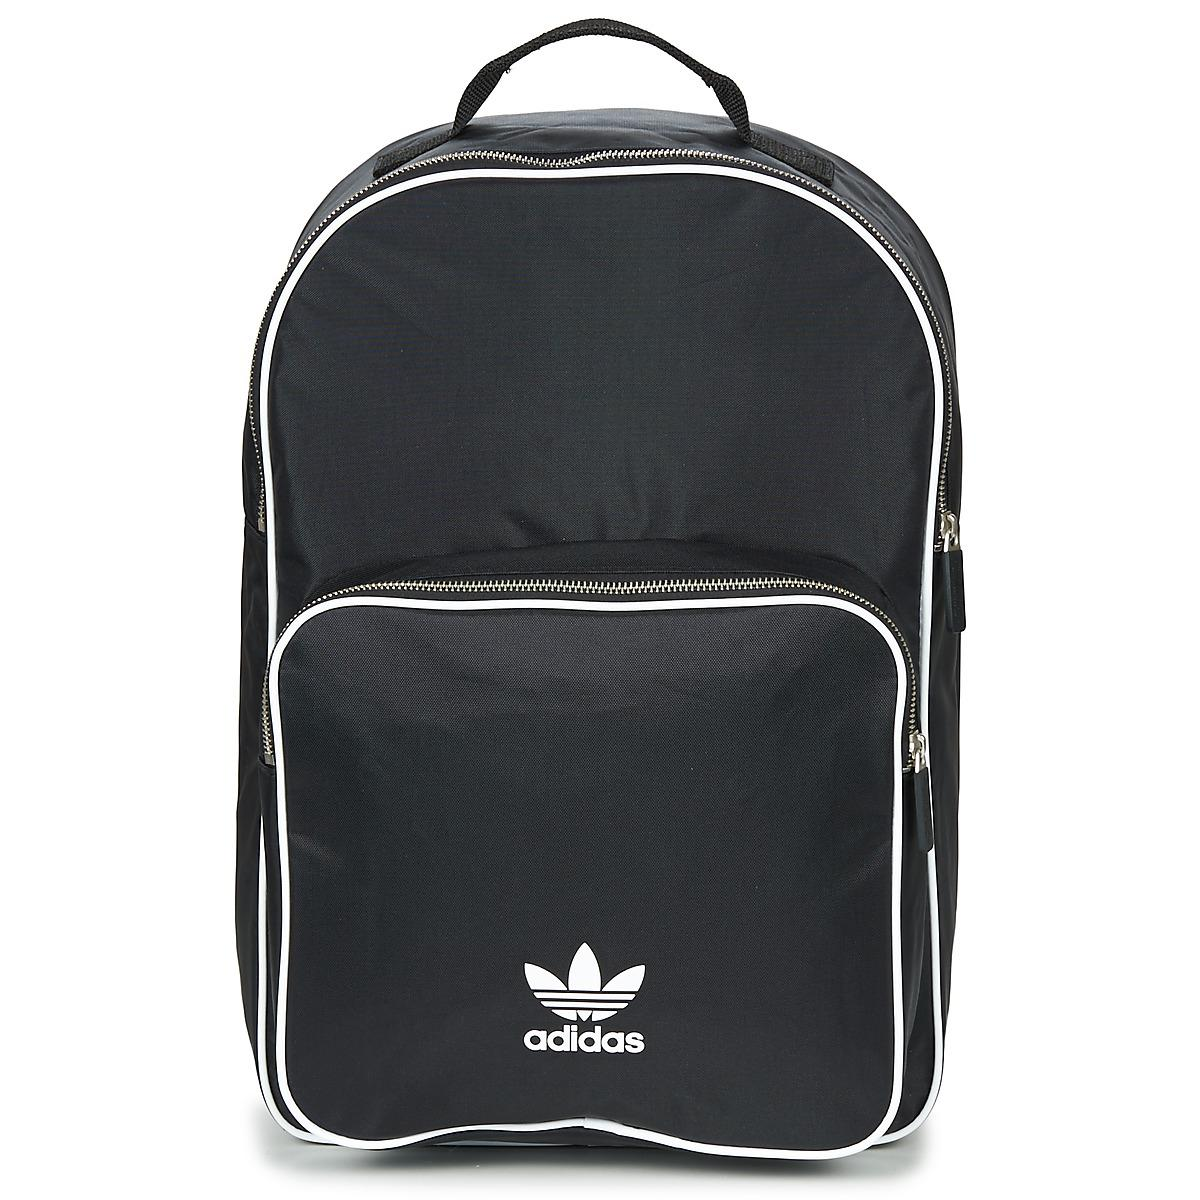 adidas Classic Adicolor Bp Backpack in Black for Men - Lyst 9aa6f8a4e9676